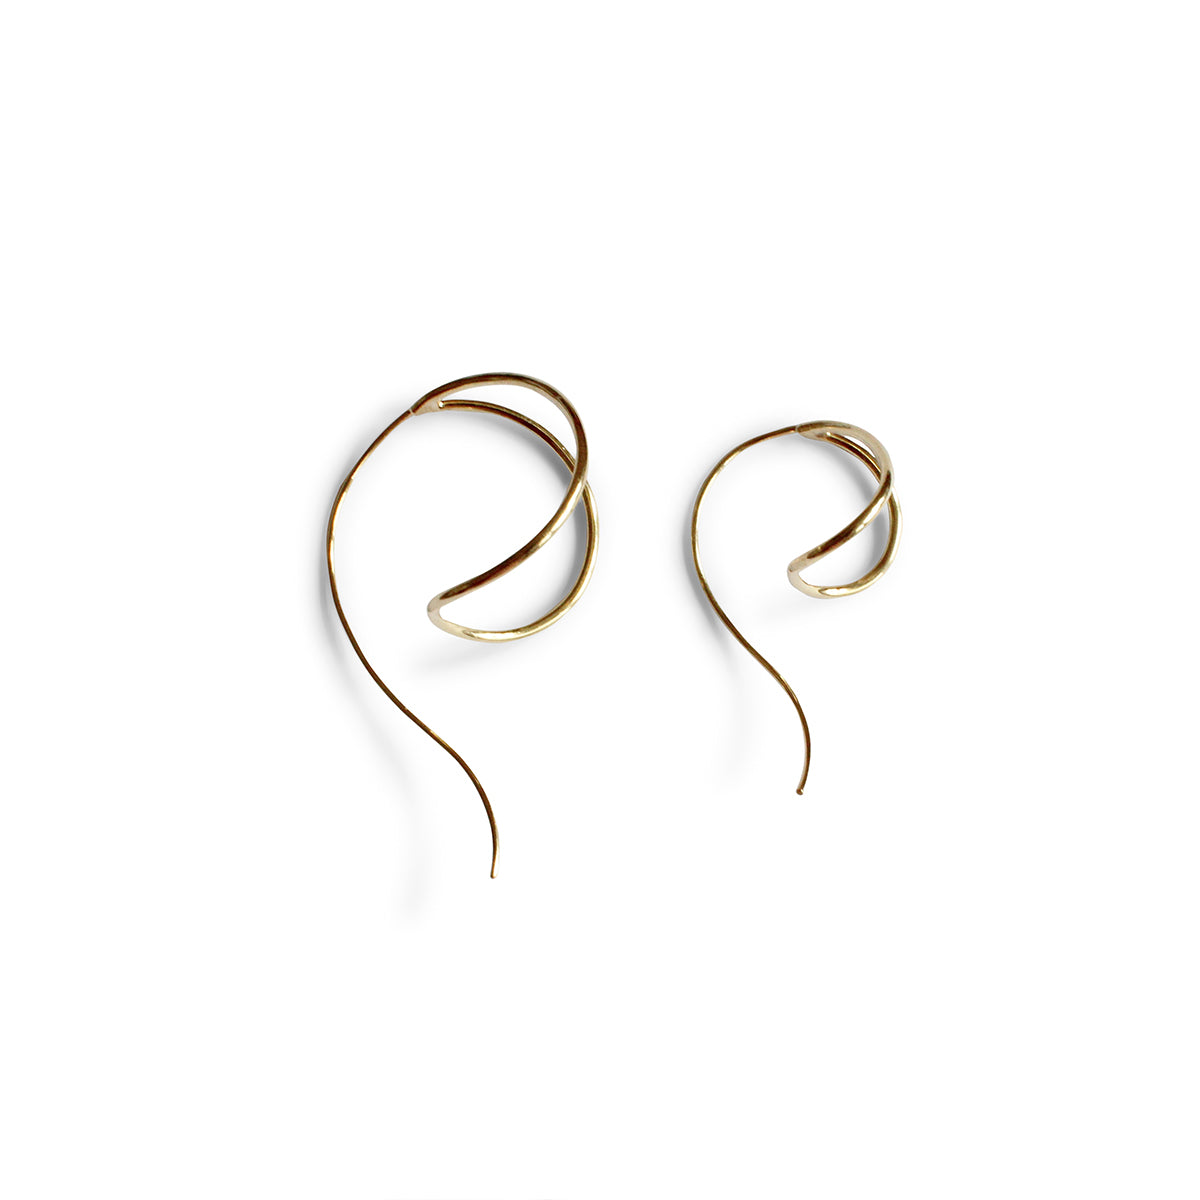 Lan Mismatch Earrings - Solid Gold